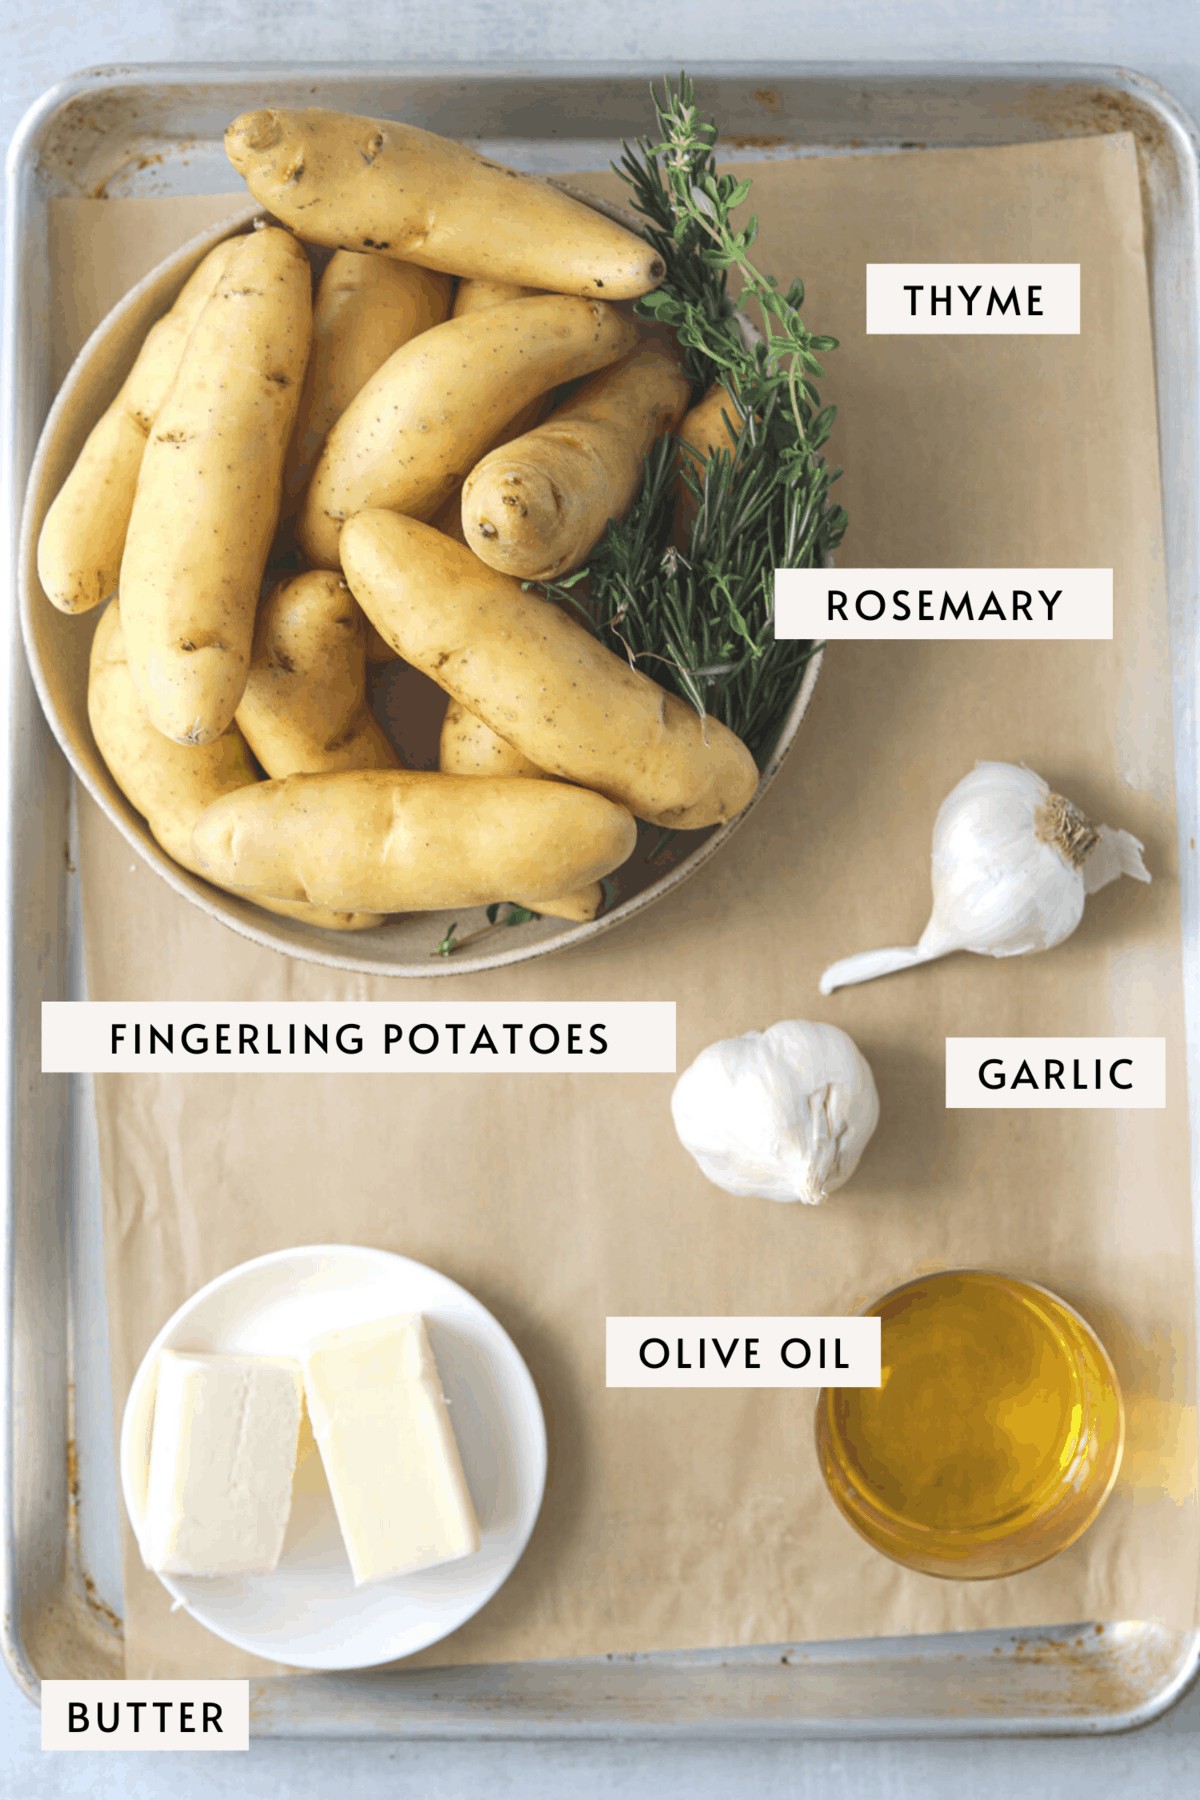 recipe ingredients on a baking tray: a bowl of fingerling potatoes, garlic, herbs, butter on a white plate and oil in a glass dish